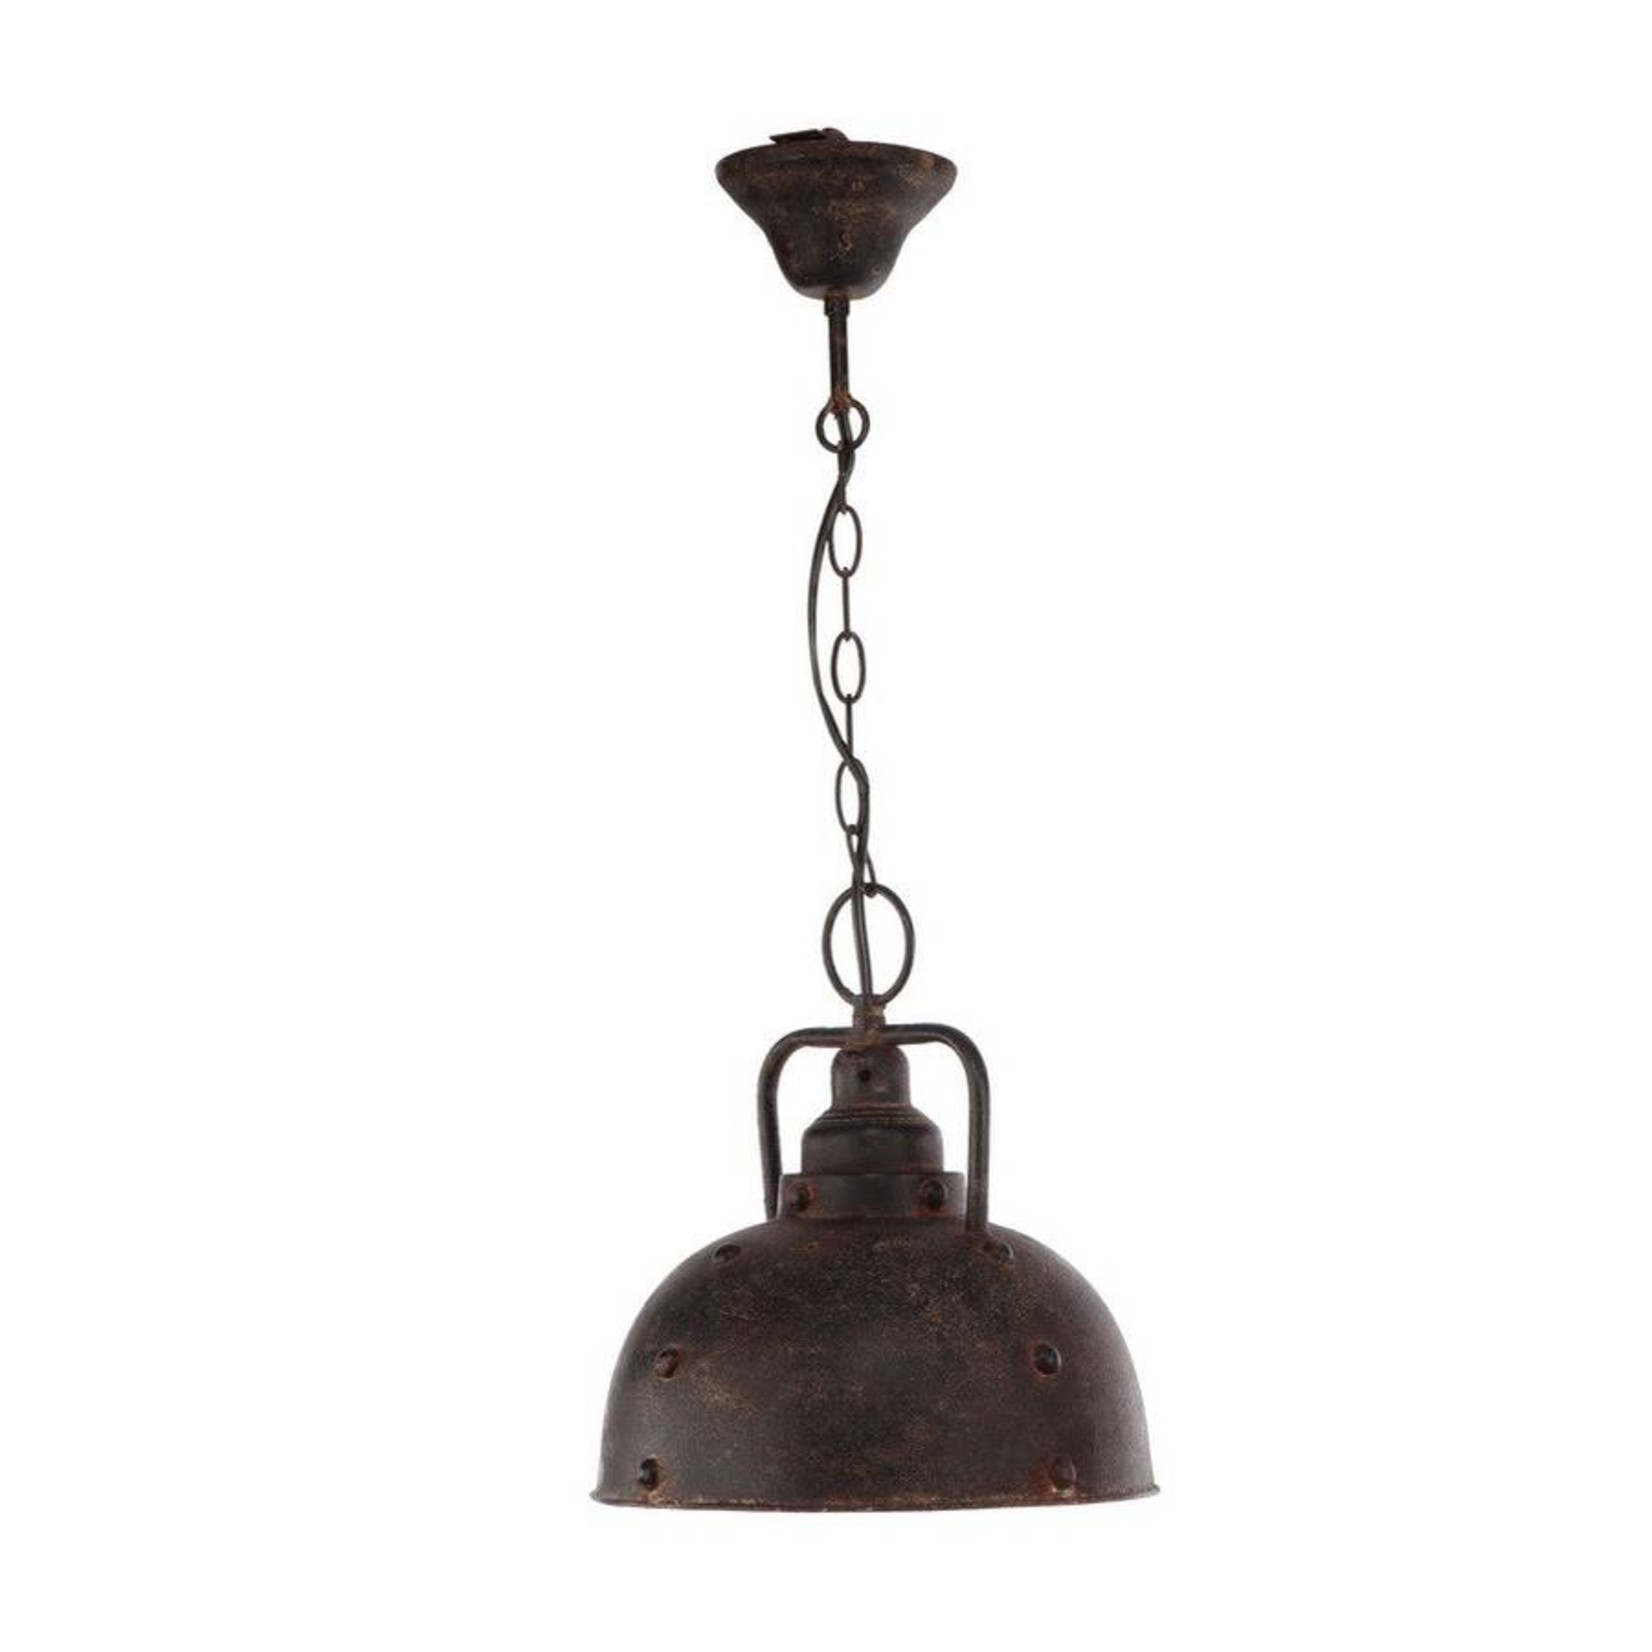 North American Country Home Hanging Lamp Metal